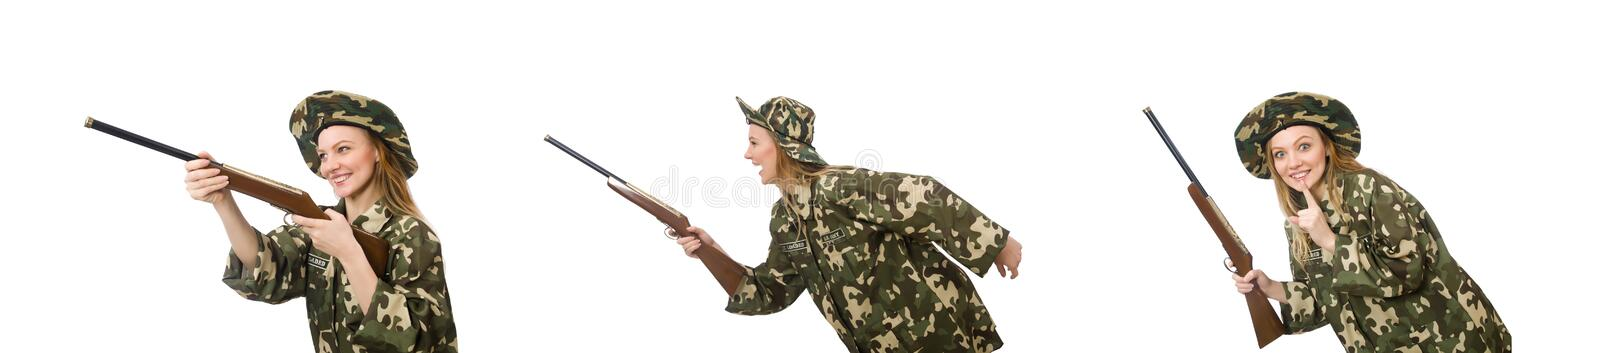 Girl in military uniform holding the gun isolated on white stock photo